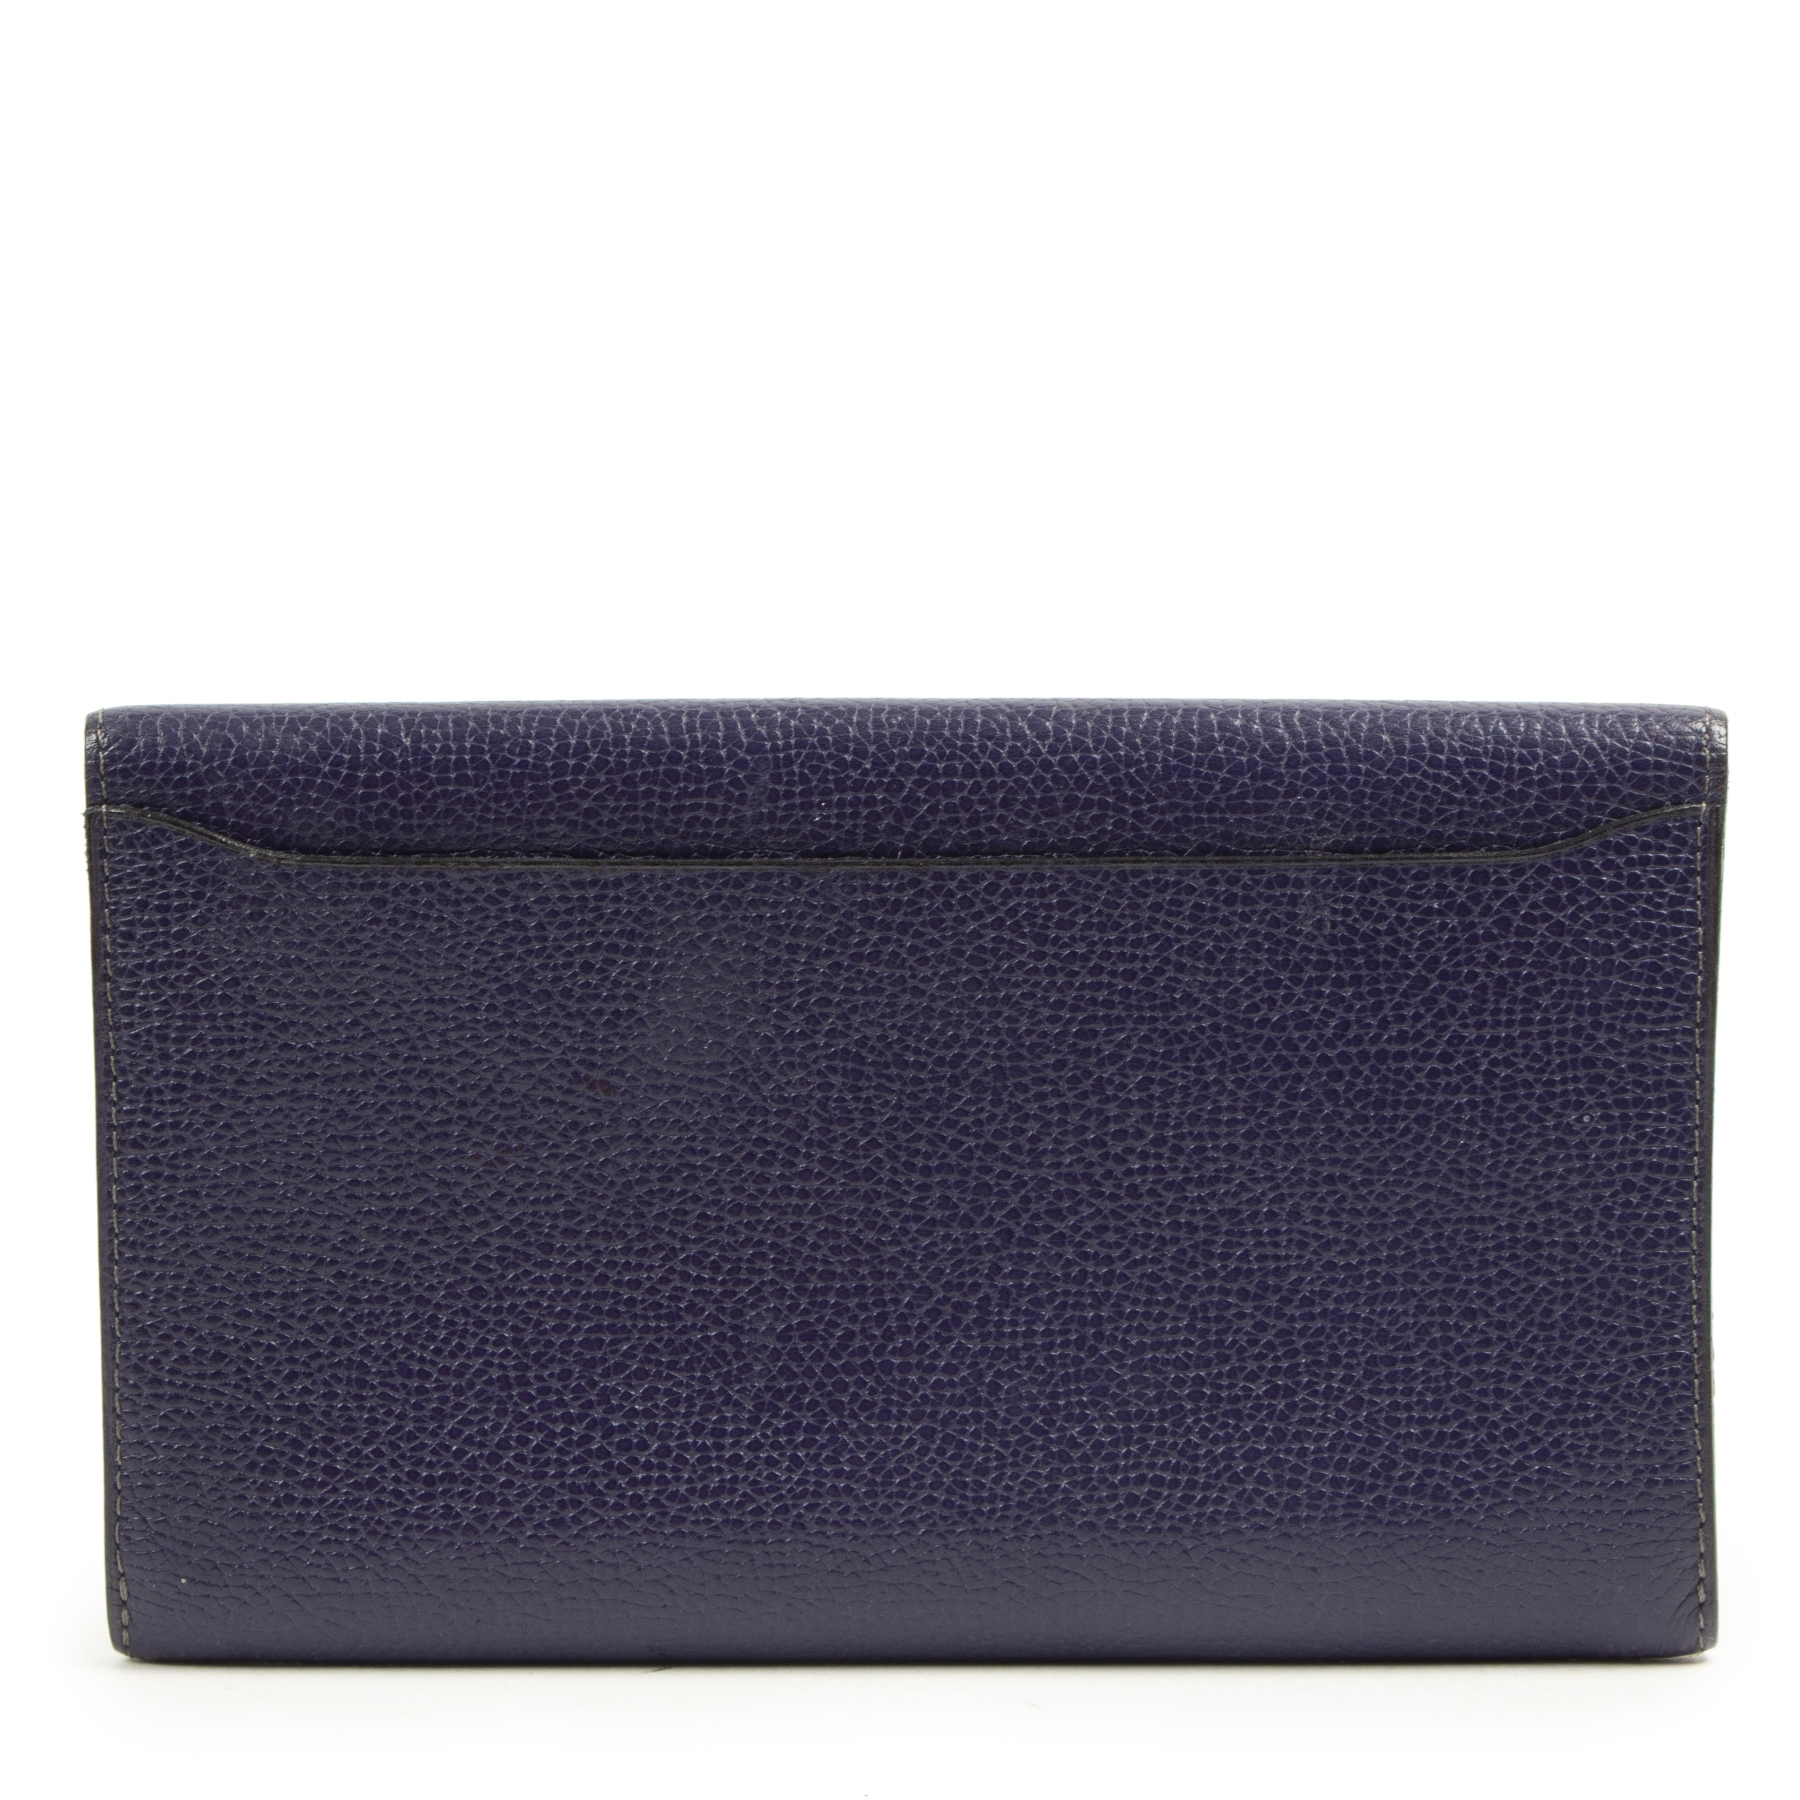 Authentic second-hand vintage Delvaux Blue Purple Leather Wallet buy online webshop LabelLOV